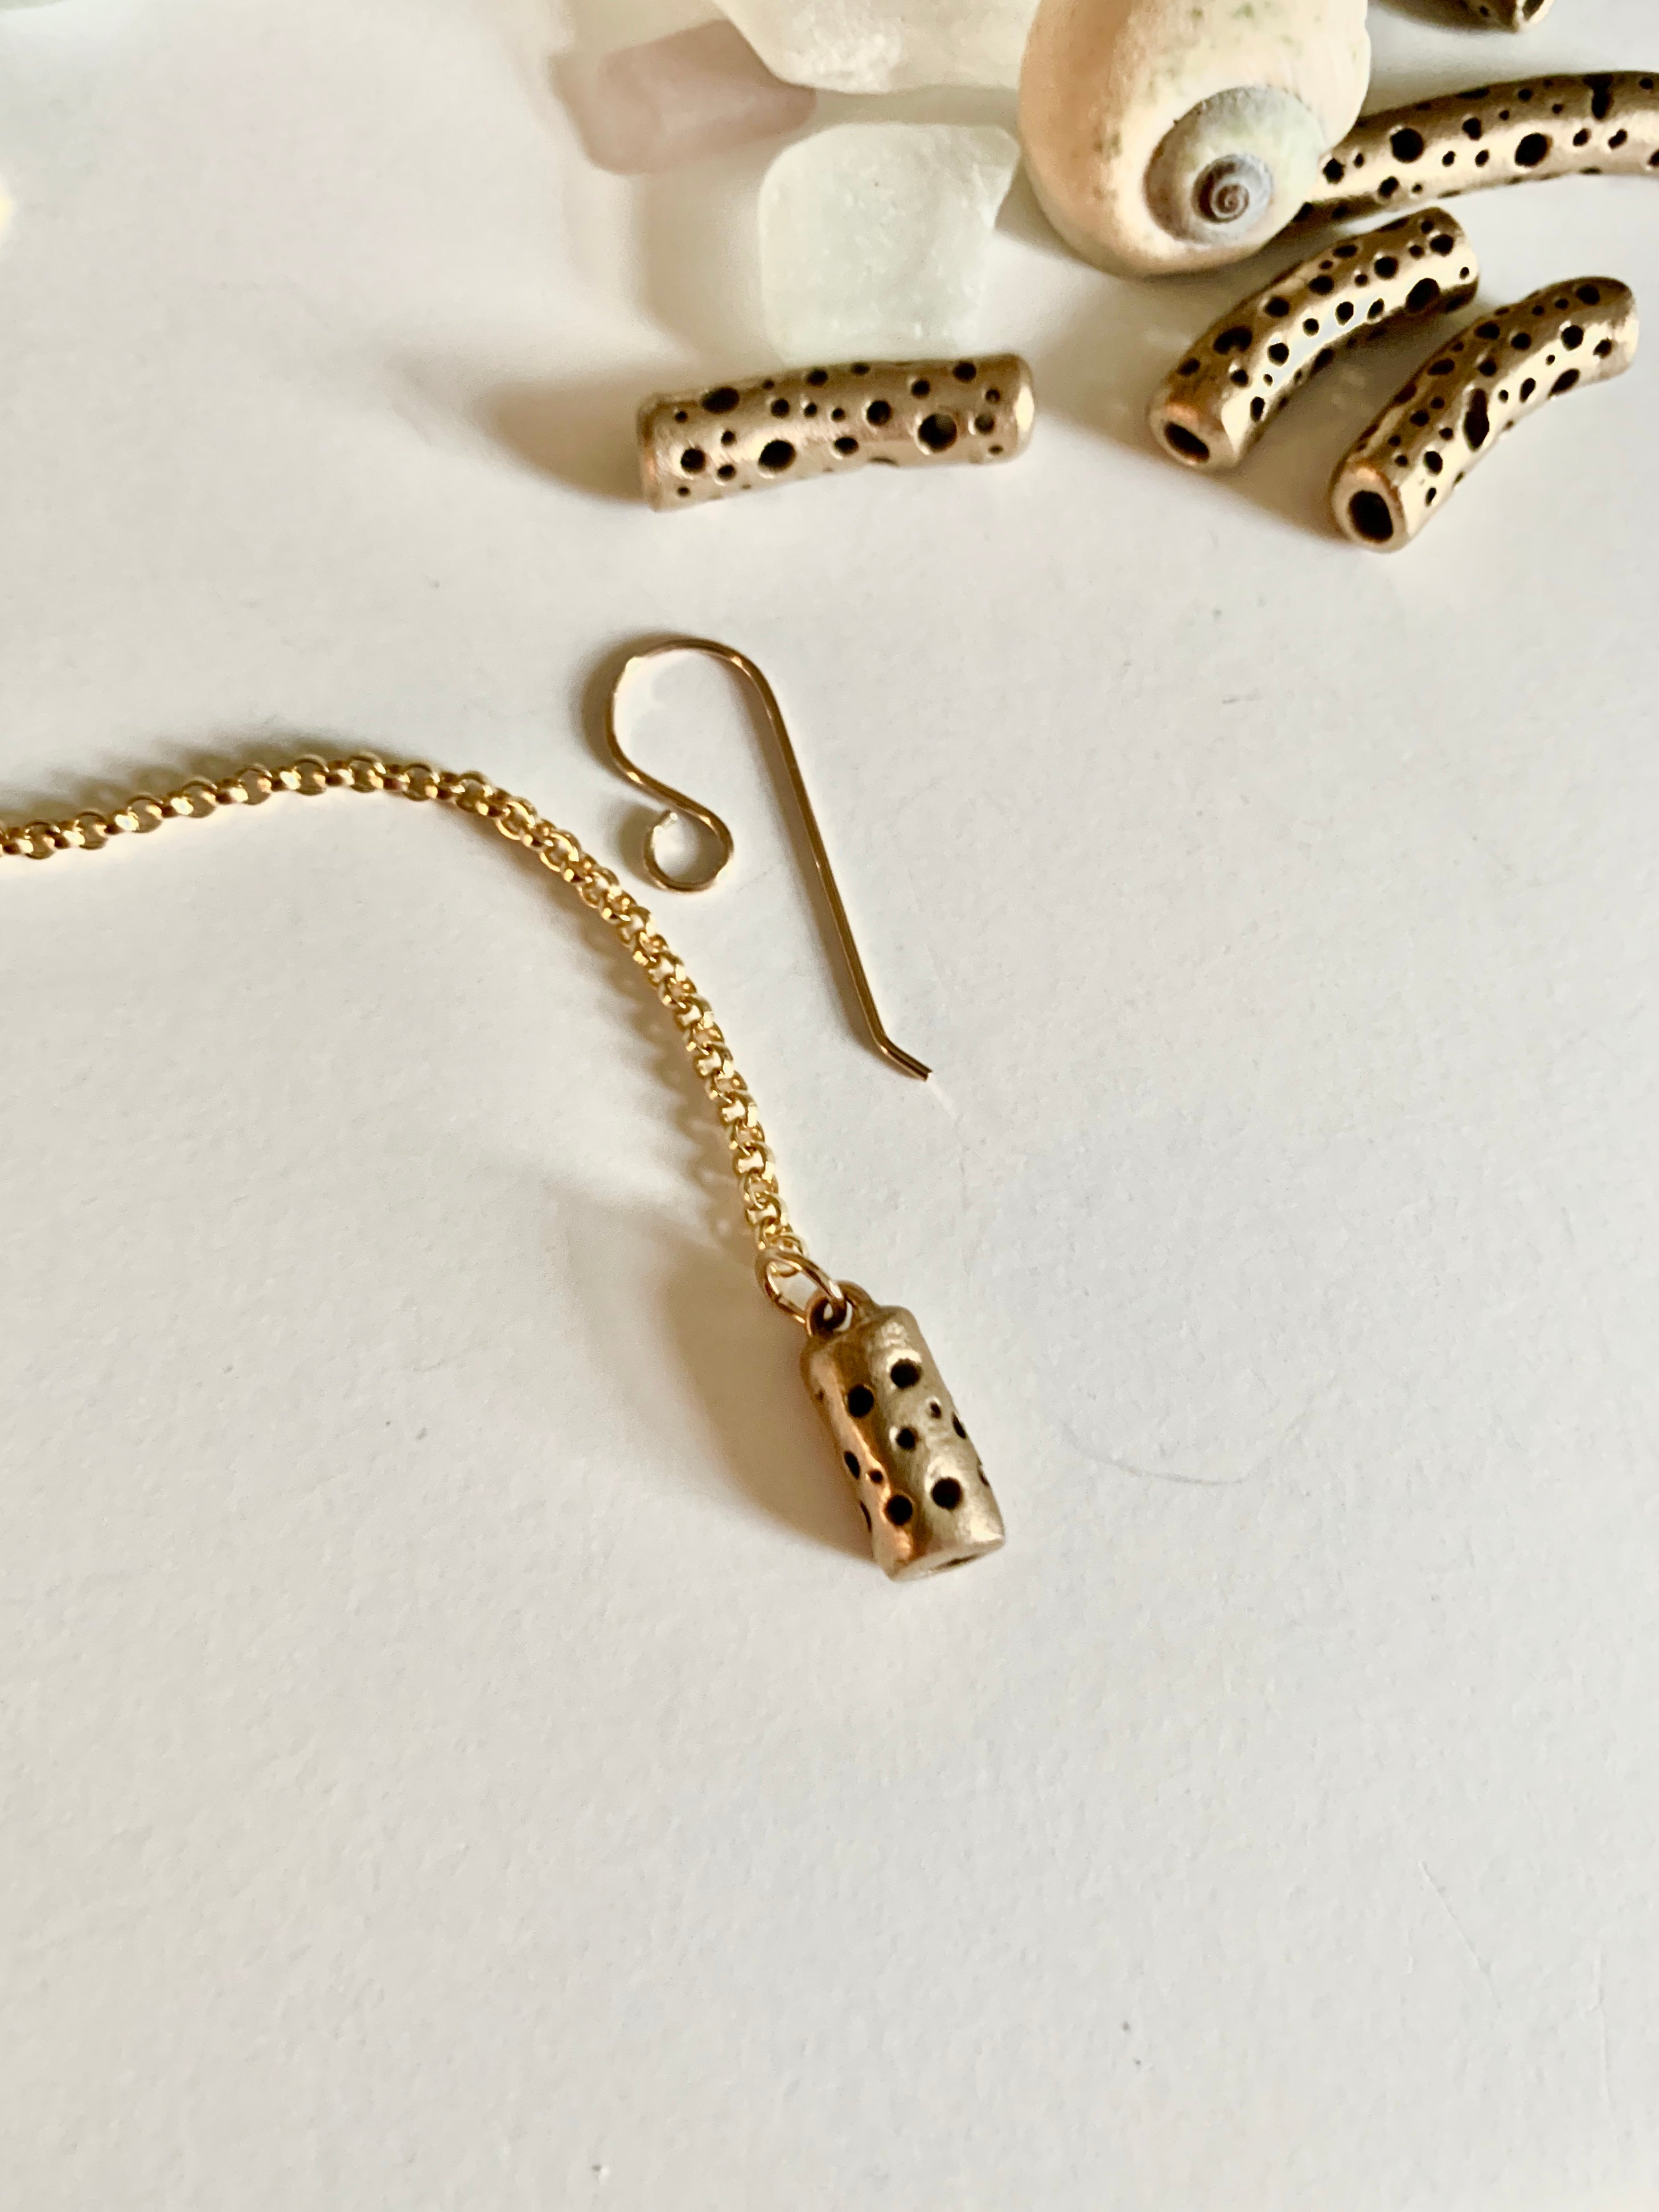 Gold and bronze artisan earrings